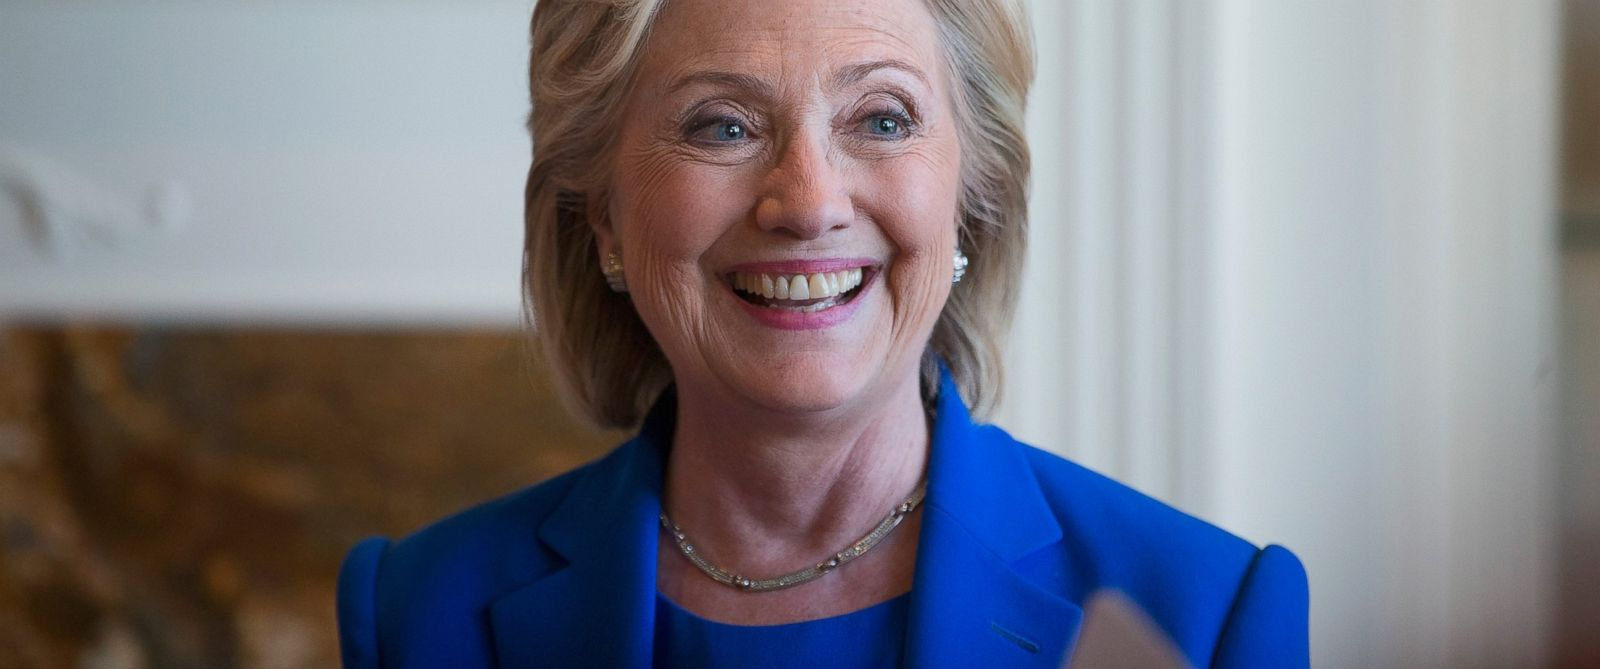 PHOTO: Democratic Presidential candidate Hillary Clinton chats with supporters during a campaign stop at the home of Chuck and Linda Smoley on June 13, 2015 in Sioux City, Iowa.